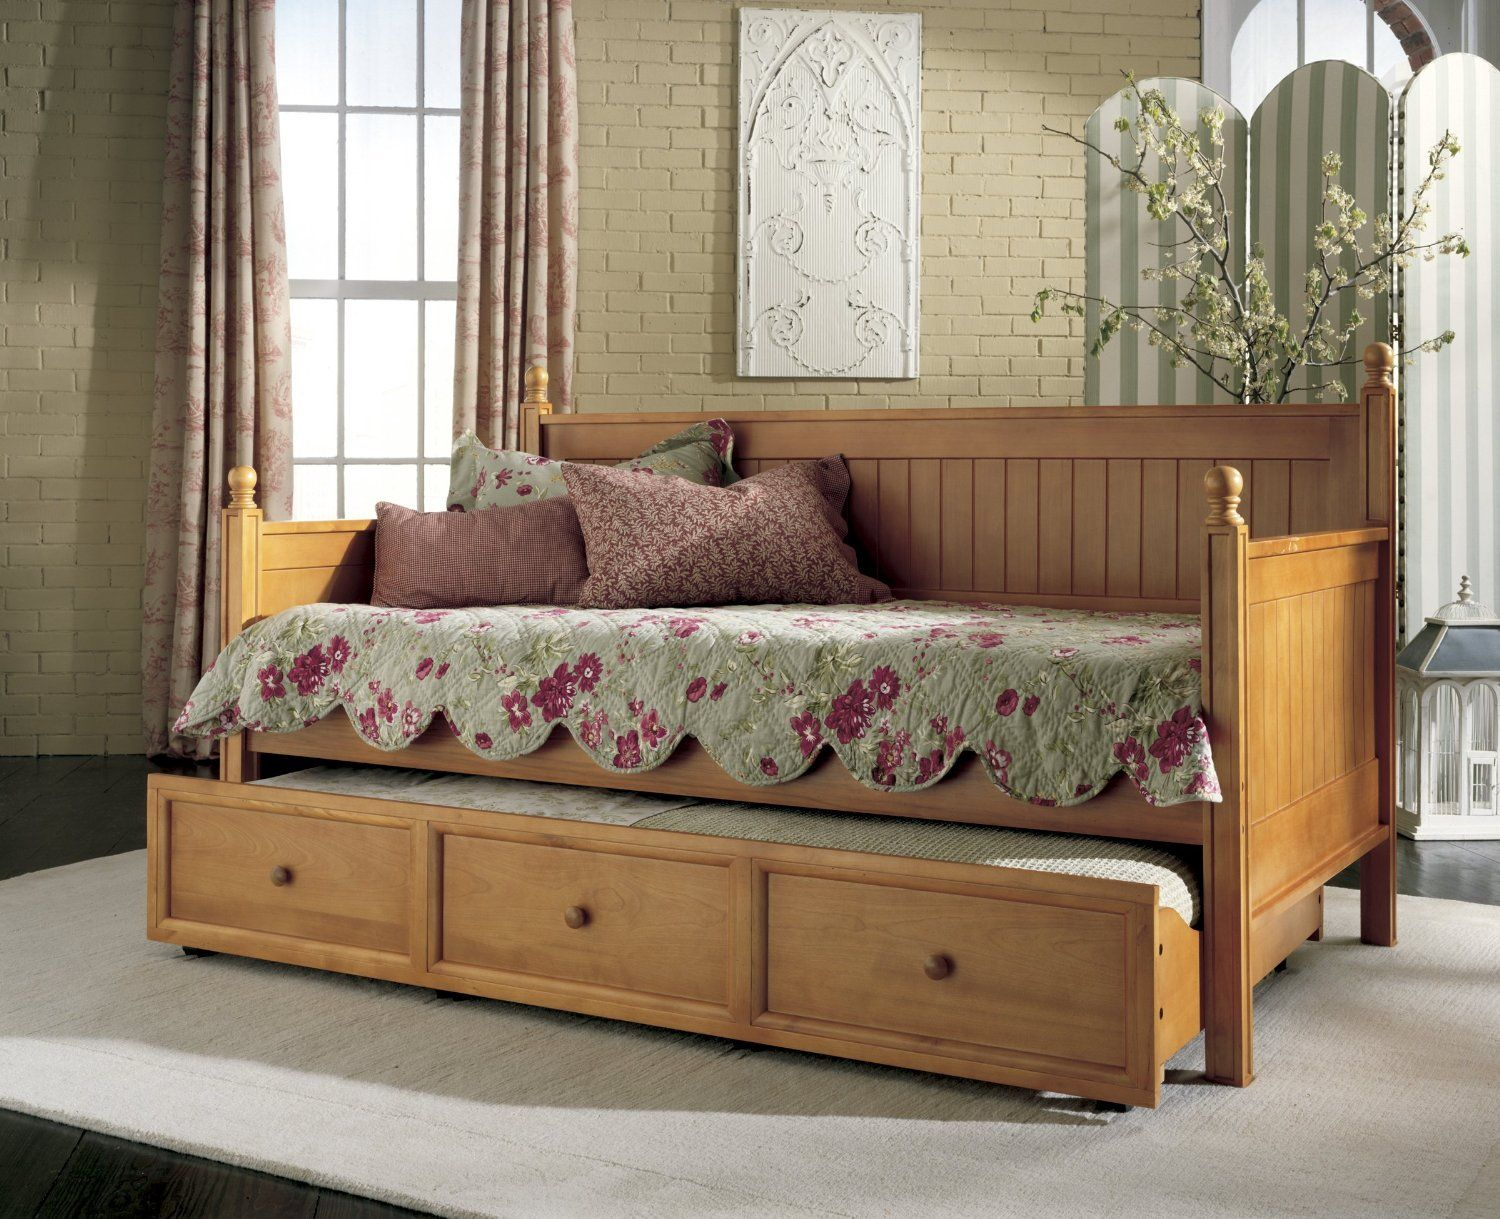 homey ideas twin bed with pull out bed. Fashion Bed Casey Wood Daybed in Honey Maple Finish with Optional Trundle  Adorable Full Size With And There Are Long Curtain